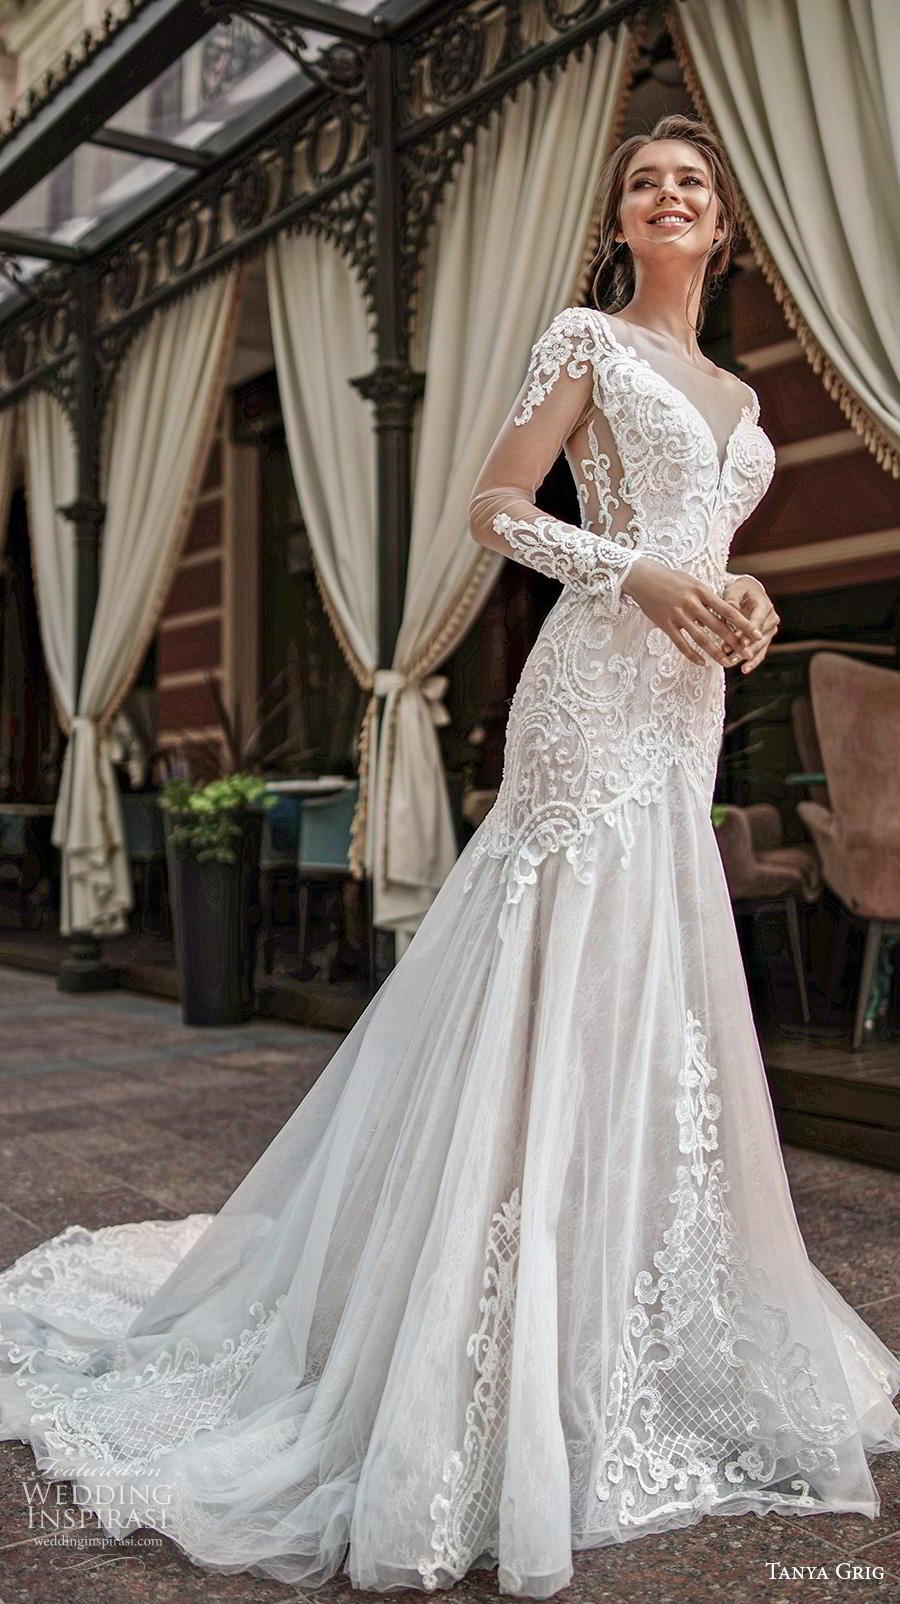 tanya grig 2020 bridal long sleeves illusion bateau deep sweethert neckline heavily embellished bodice elegant glamorous trumpet wedding dress v back chapel train (3) mv